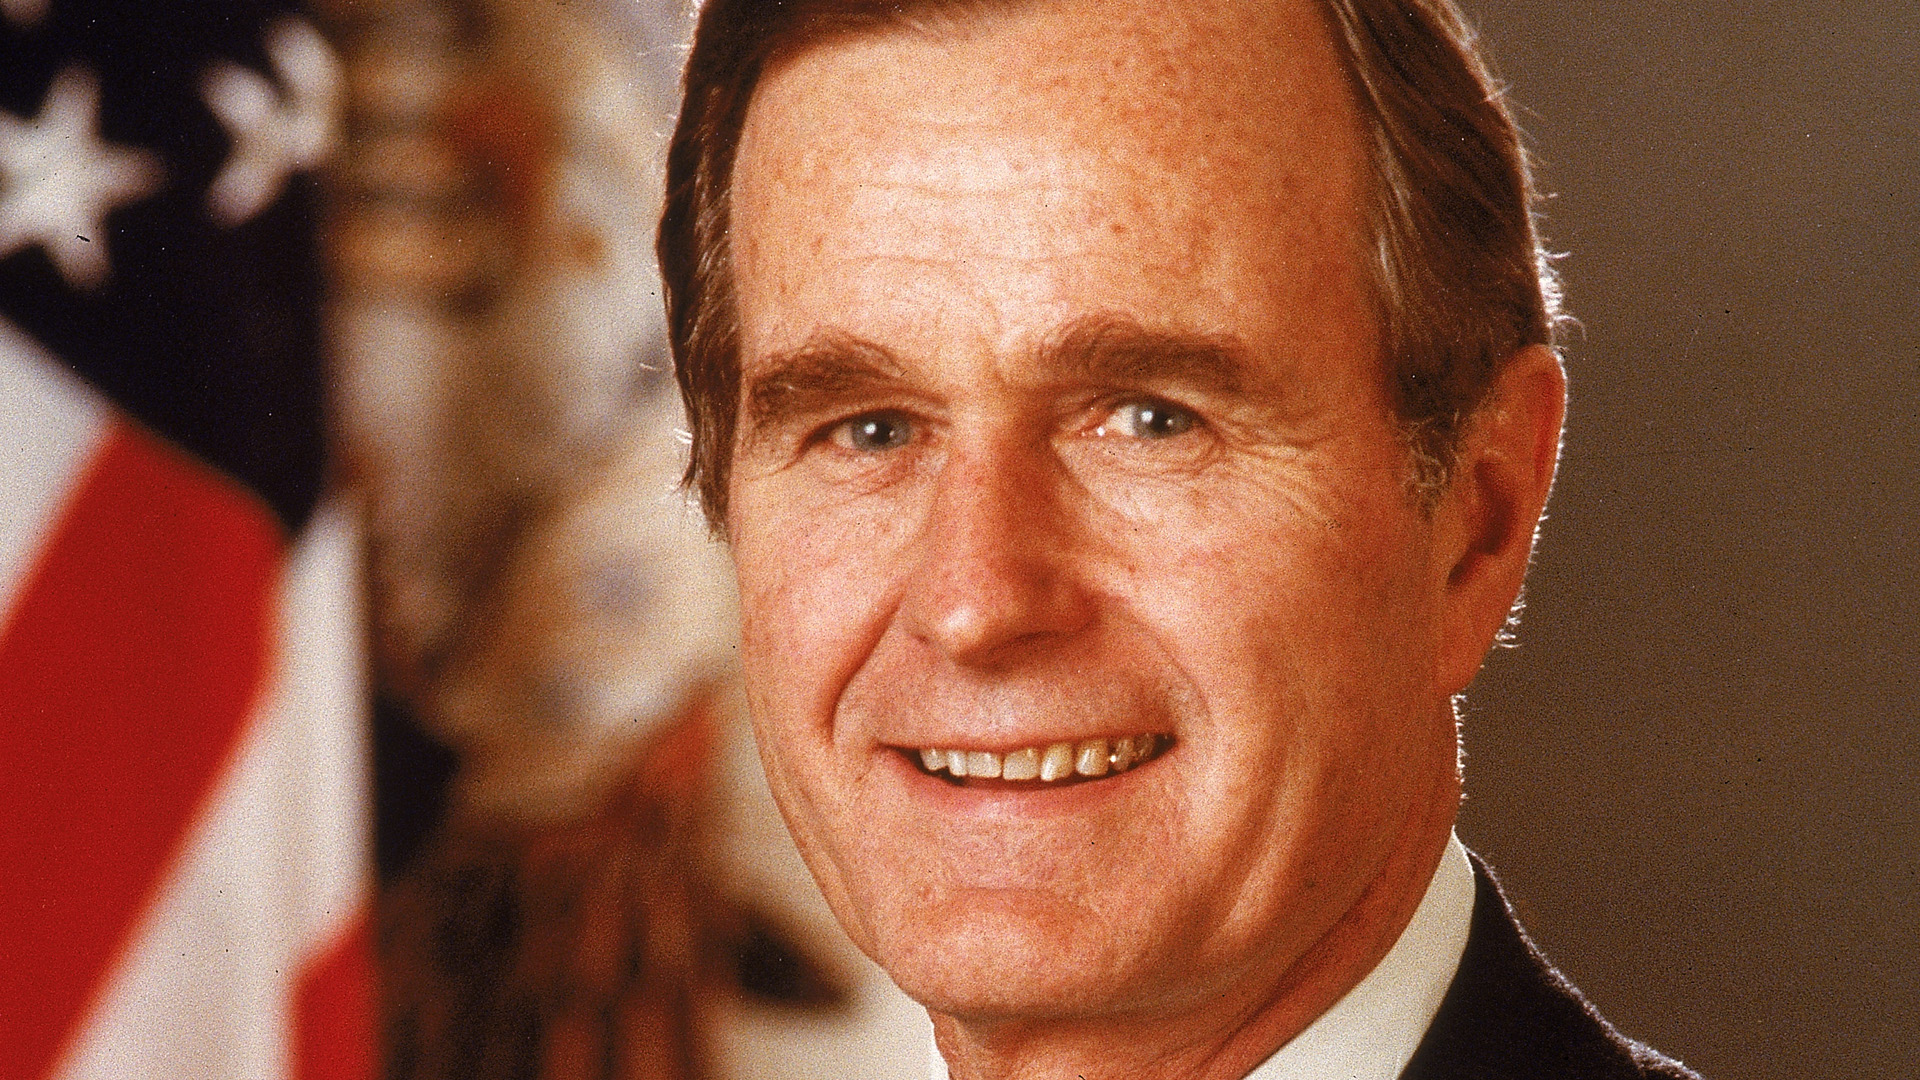 President George H. W. Bush appears in a White House portrait, circa 1989. (Credit: Hulton Archive/Getty Images)